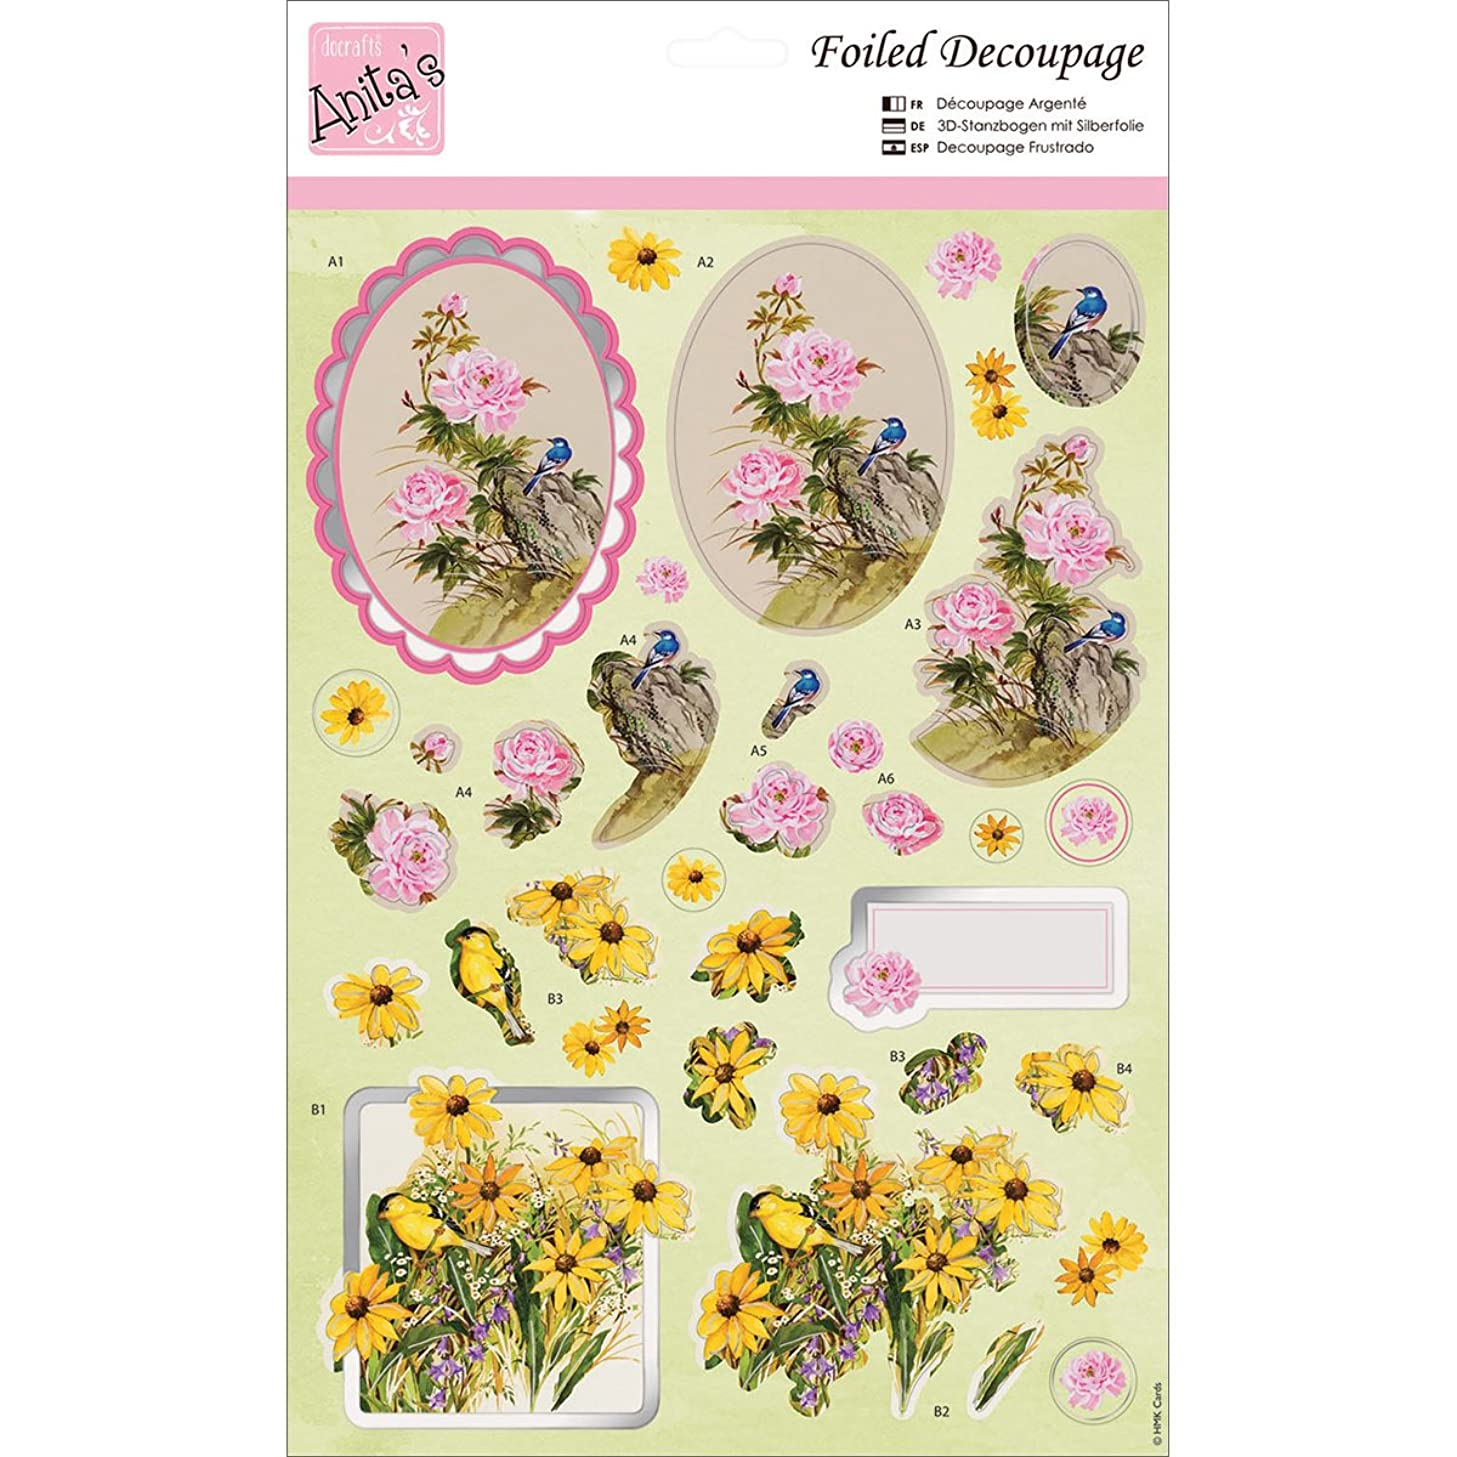 DOCrafts Anita's A4 Foiled Decoupage Sheet, Flowers and Birds